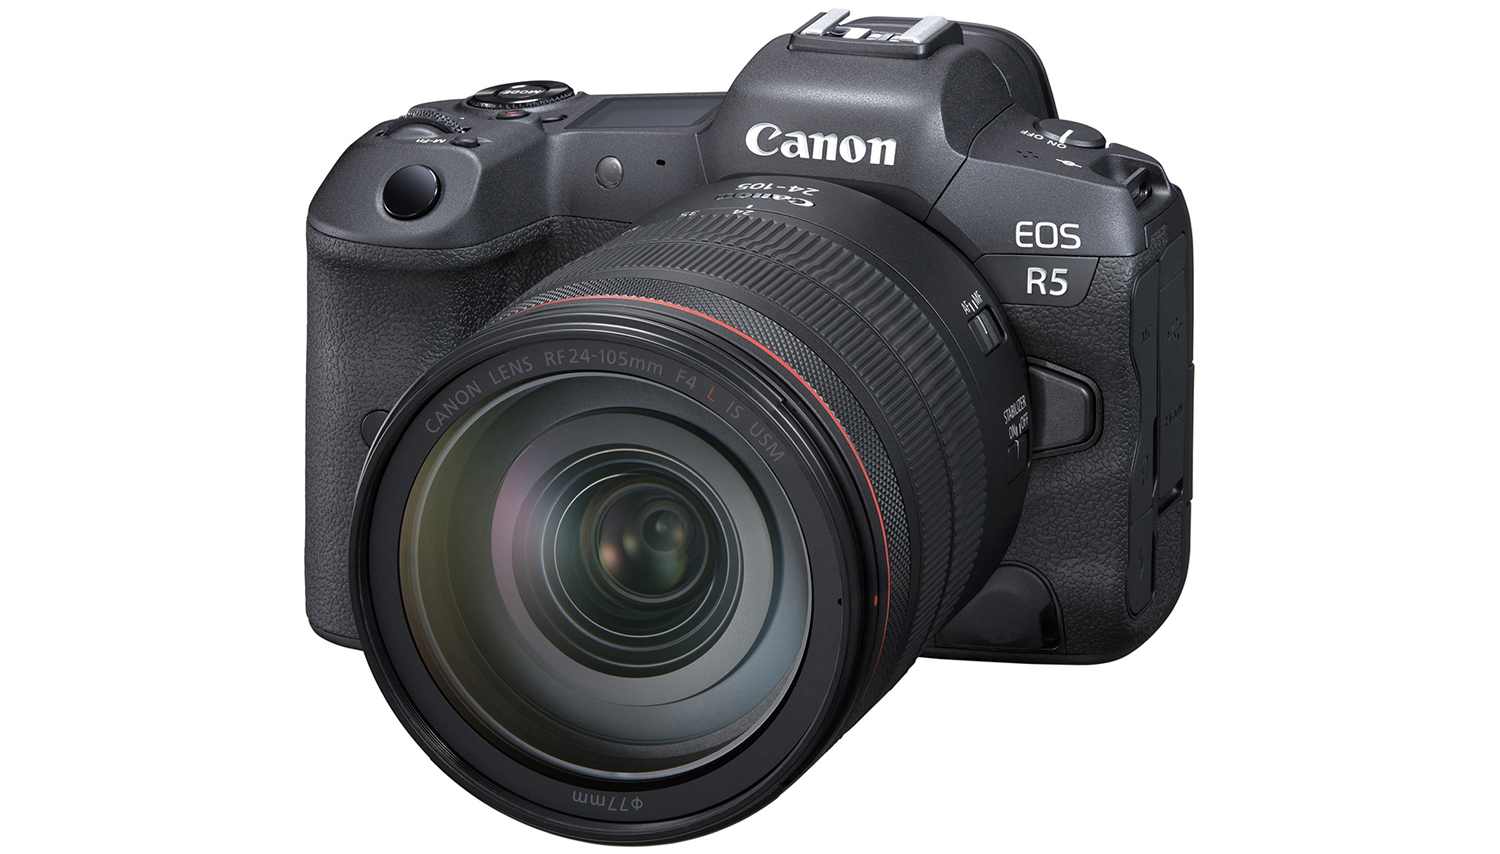 Canon EOS R5 full frame mirrorless camera shoots 8K raw video